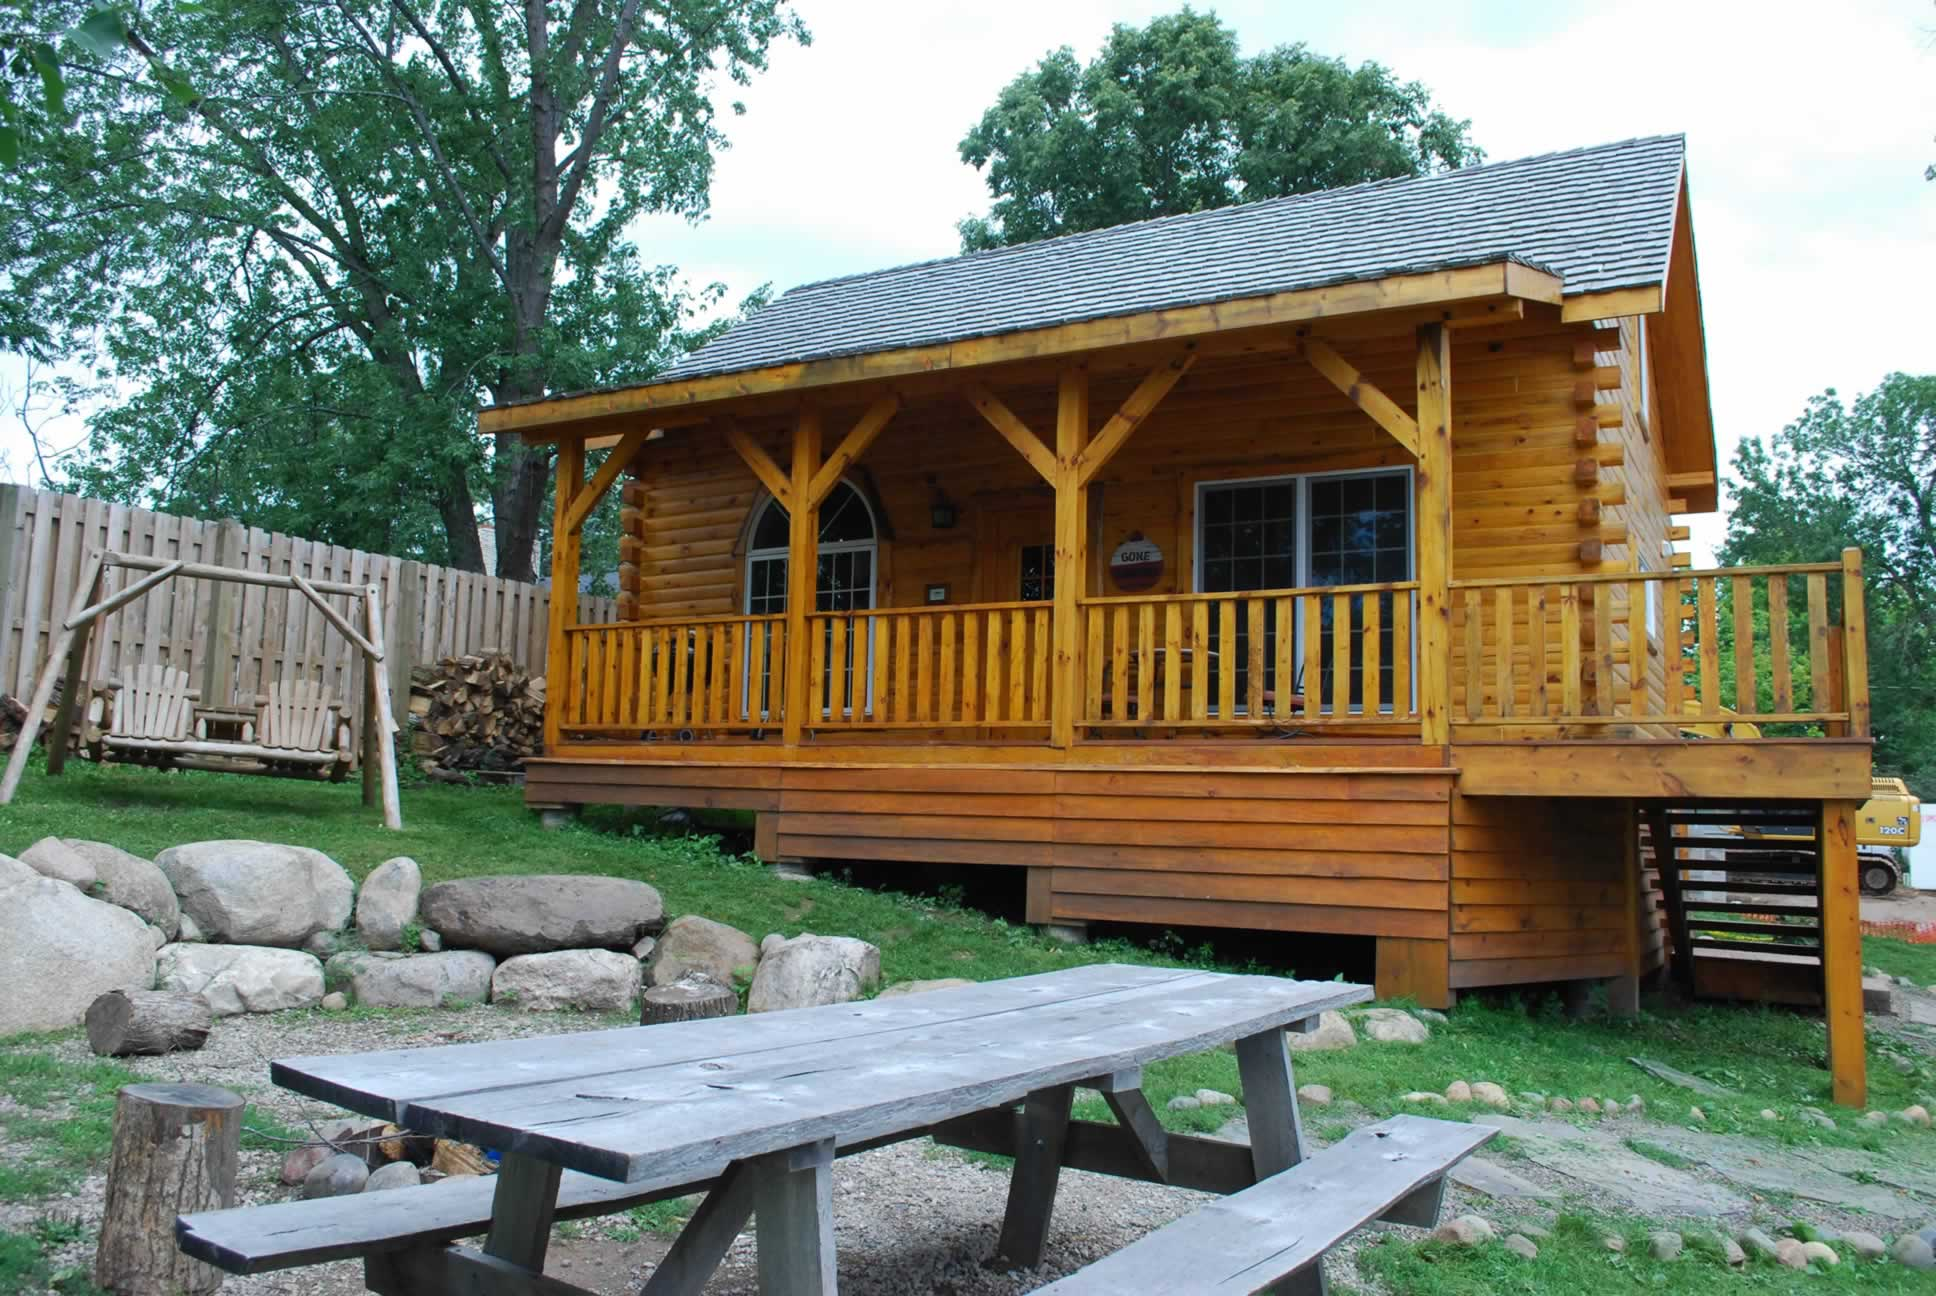 Lakeside log cabins guides boat rentals launch for Fishing cabin rentals